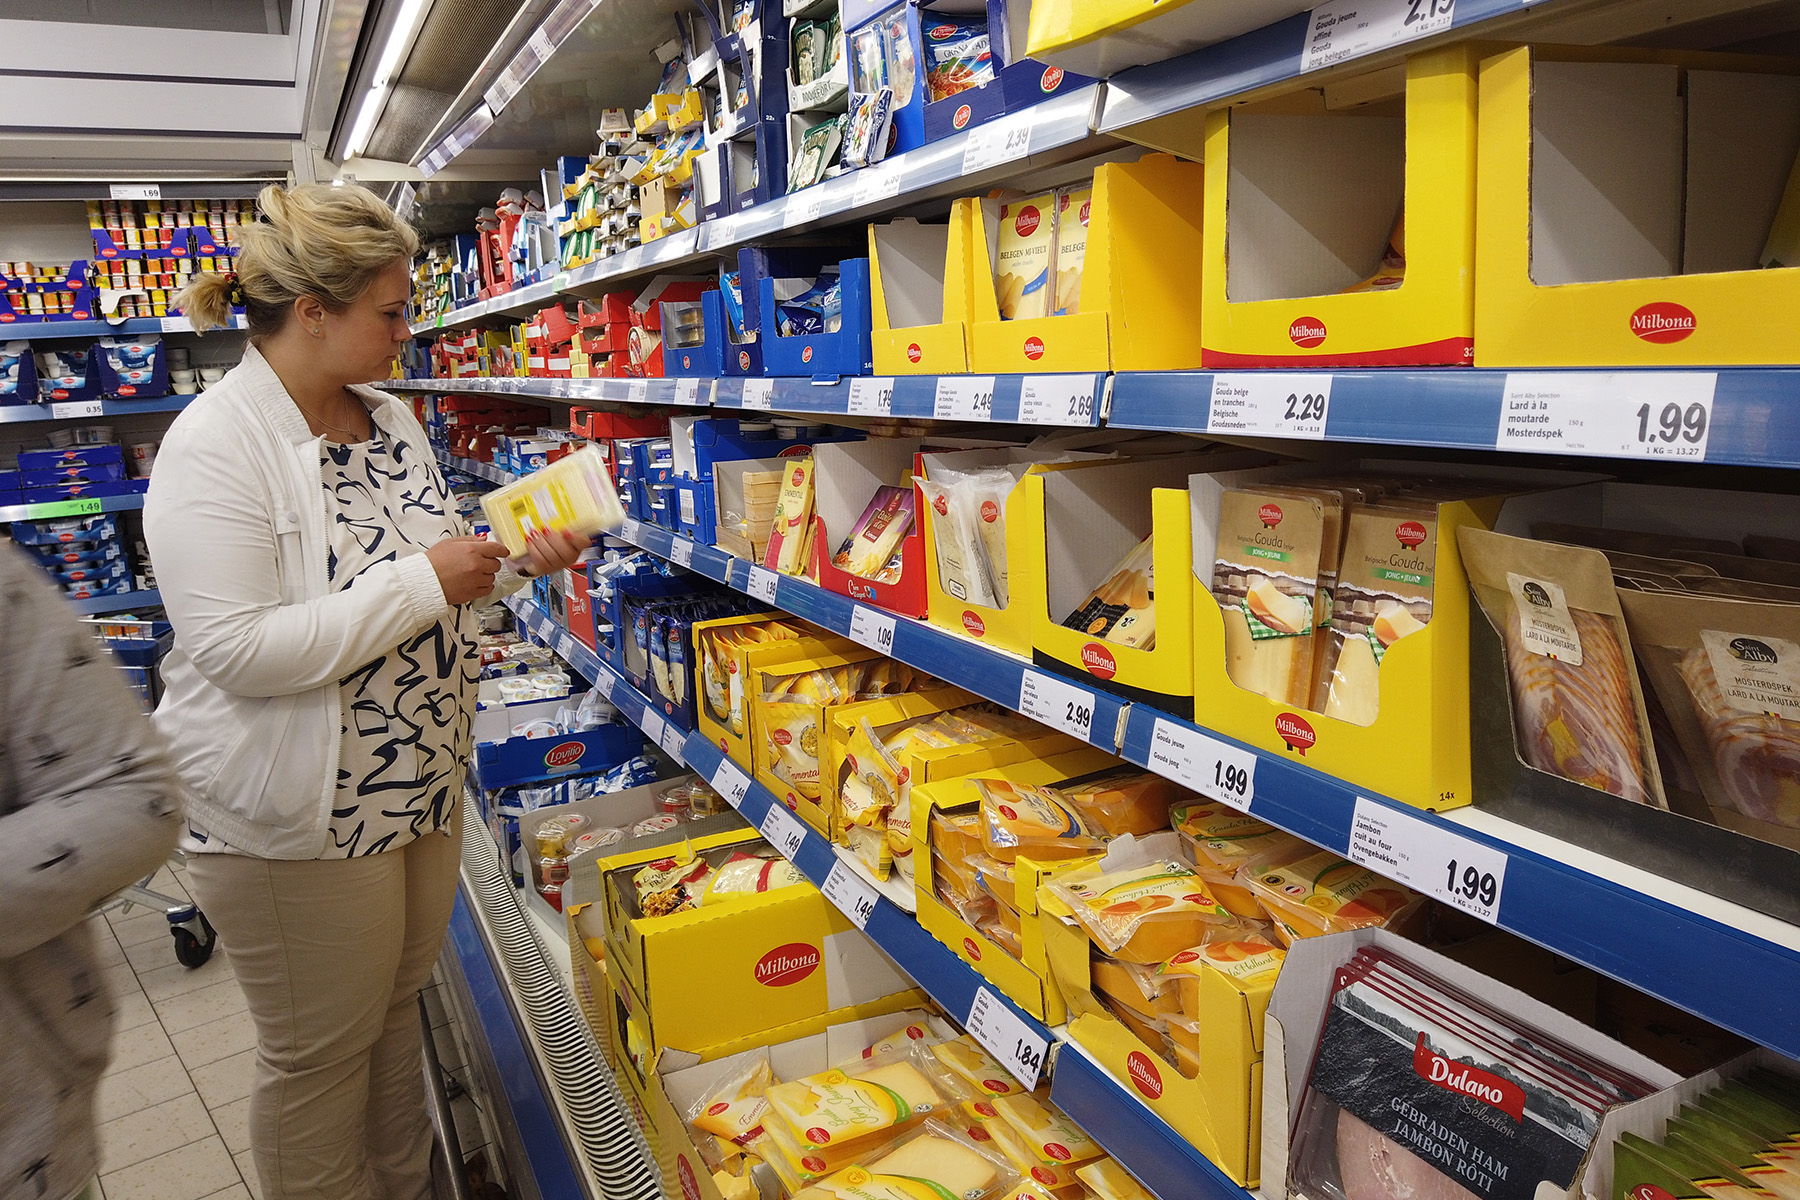 A woman shopping in a grocery store in Brussels